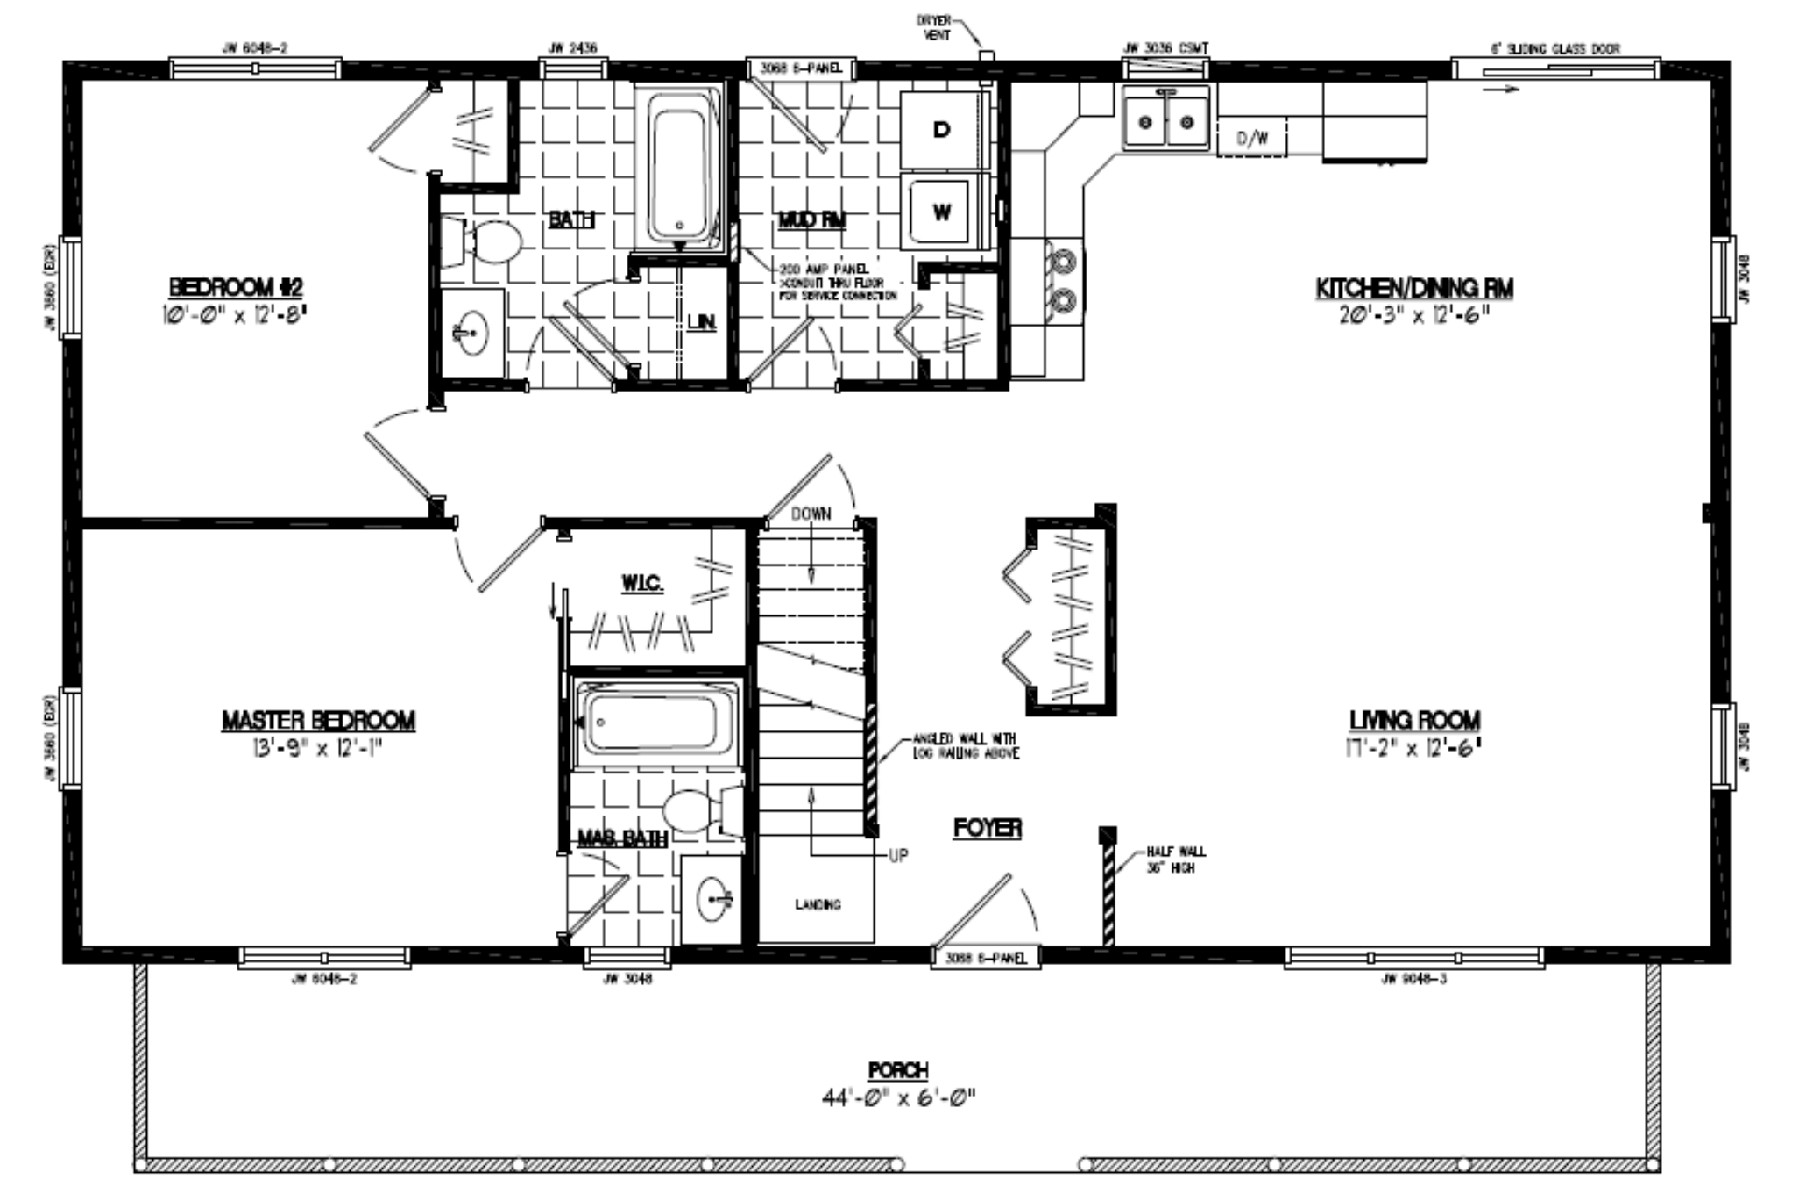 Certified Homes | Mountaineer Certified Home Floor Plans on luxury ranch home plans, unique ranch house plans, ranch house with garage, ranch house design, ranch house with basement, ranch house plans awesome, walkout ranch house plans, 4-bedroom ranch house plans, western ranch house plans, ranch house plans with porches, loft house plans, ranch house layout, rustic ranch house plans, classic ranch house plans, ranch country house plans, luxury house plans, one story house plans, 8 bedroom ranch house plans, texas ranch house plans, ranch house kitchens,